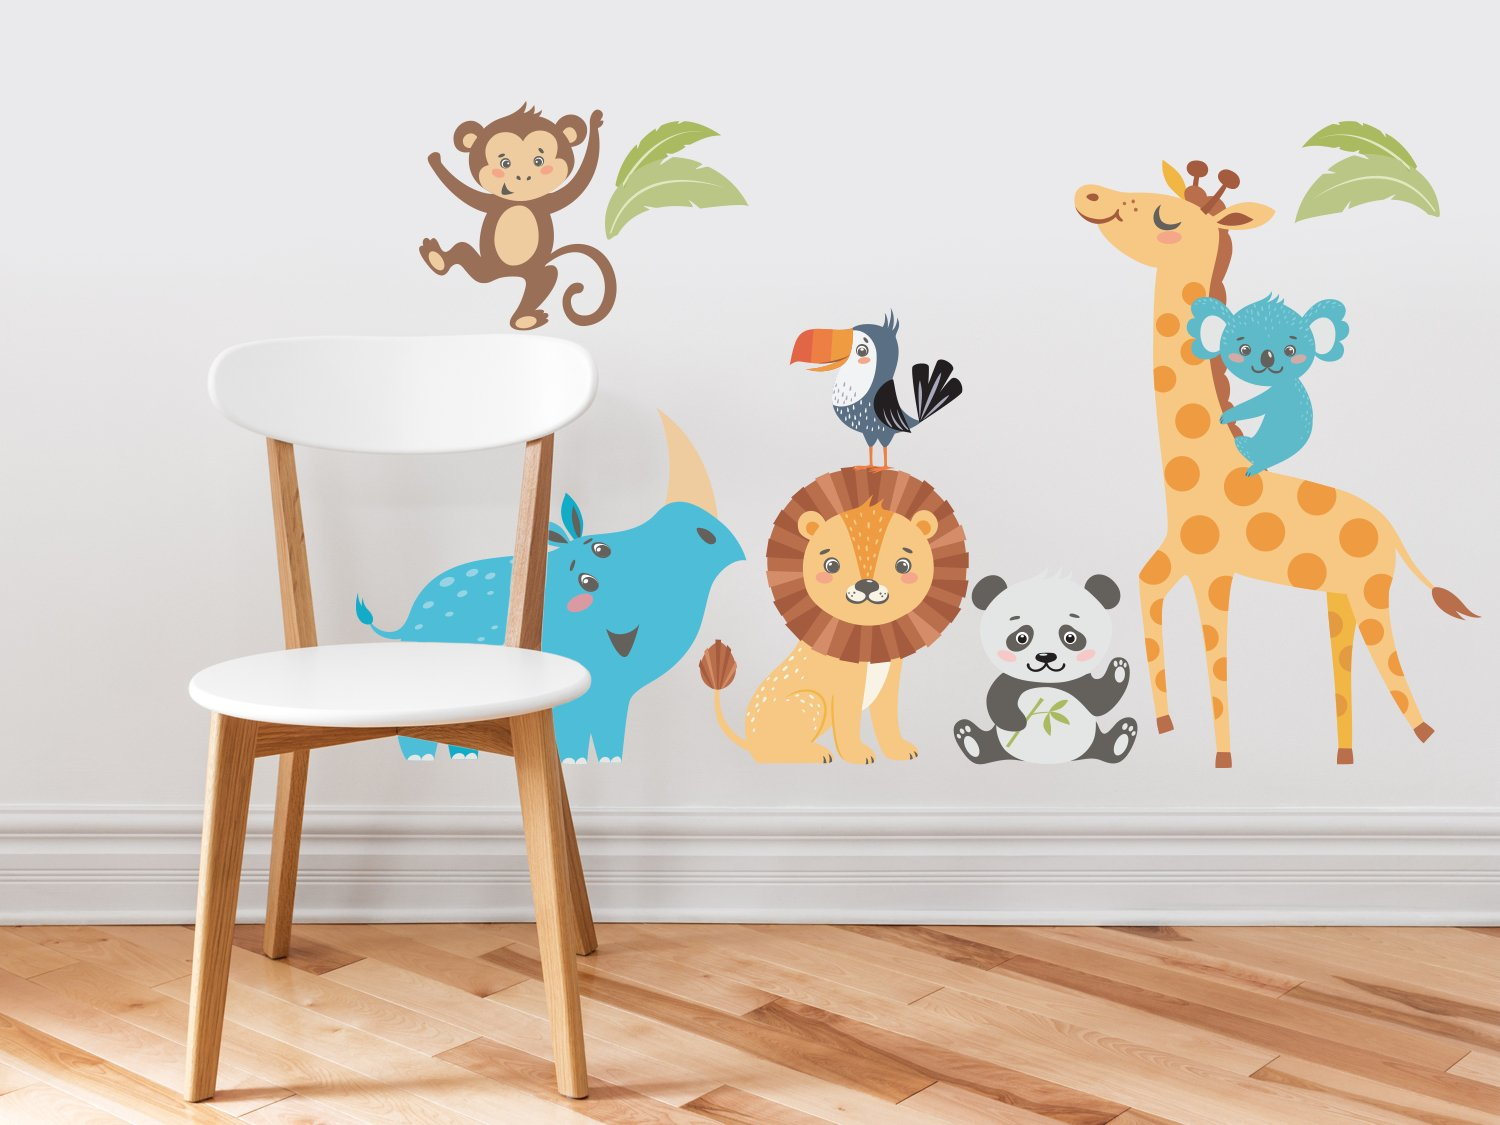 Wild Animal Park Fabric Wall Decals with Panda, Lion, Giraffe, Rhino, Toucan, Koala, and Monkey, Animal Wall Sticker, Non-Toxic, Removable, Reusable, Respositionable by Sunny Decals